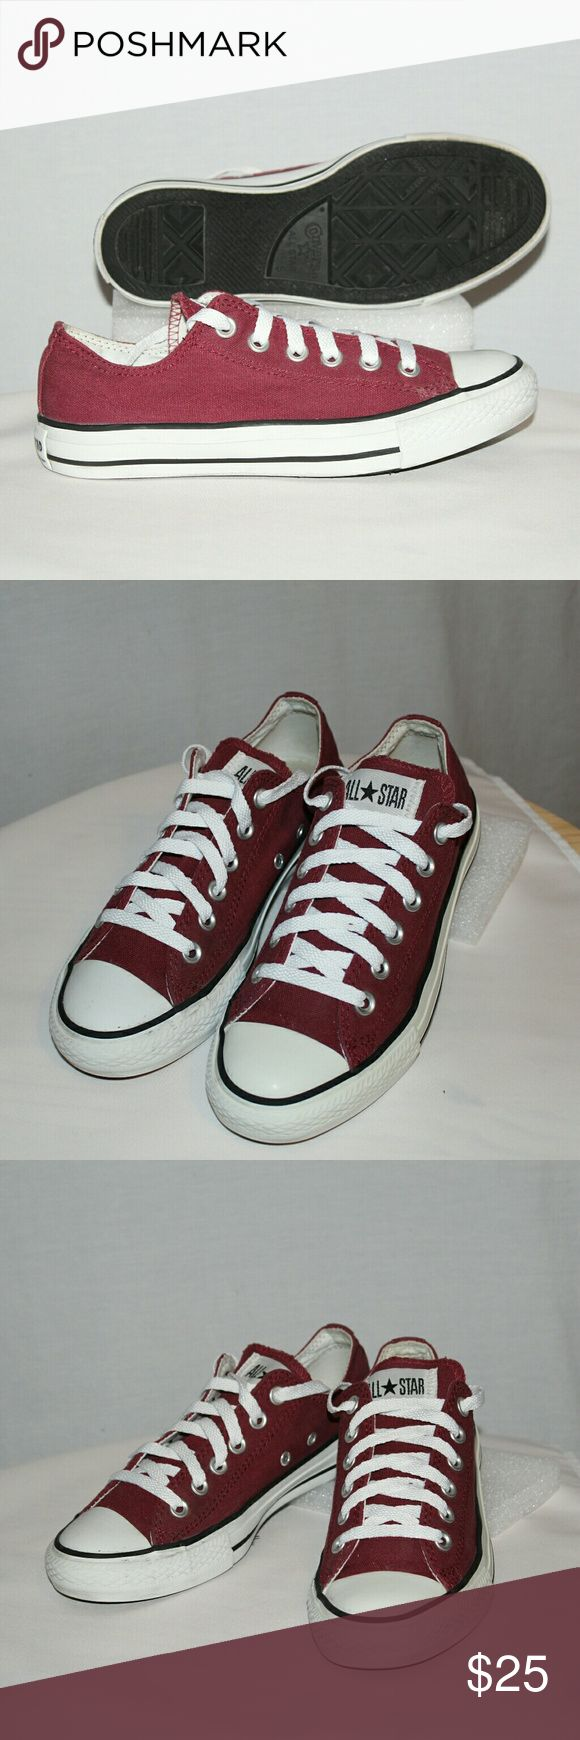 Converse All Stars Converse All Stars,  gently worn, clean upper canvas,  soles show little to no wearing. Converse All Stars Shoes Sneakers